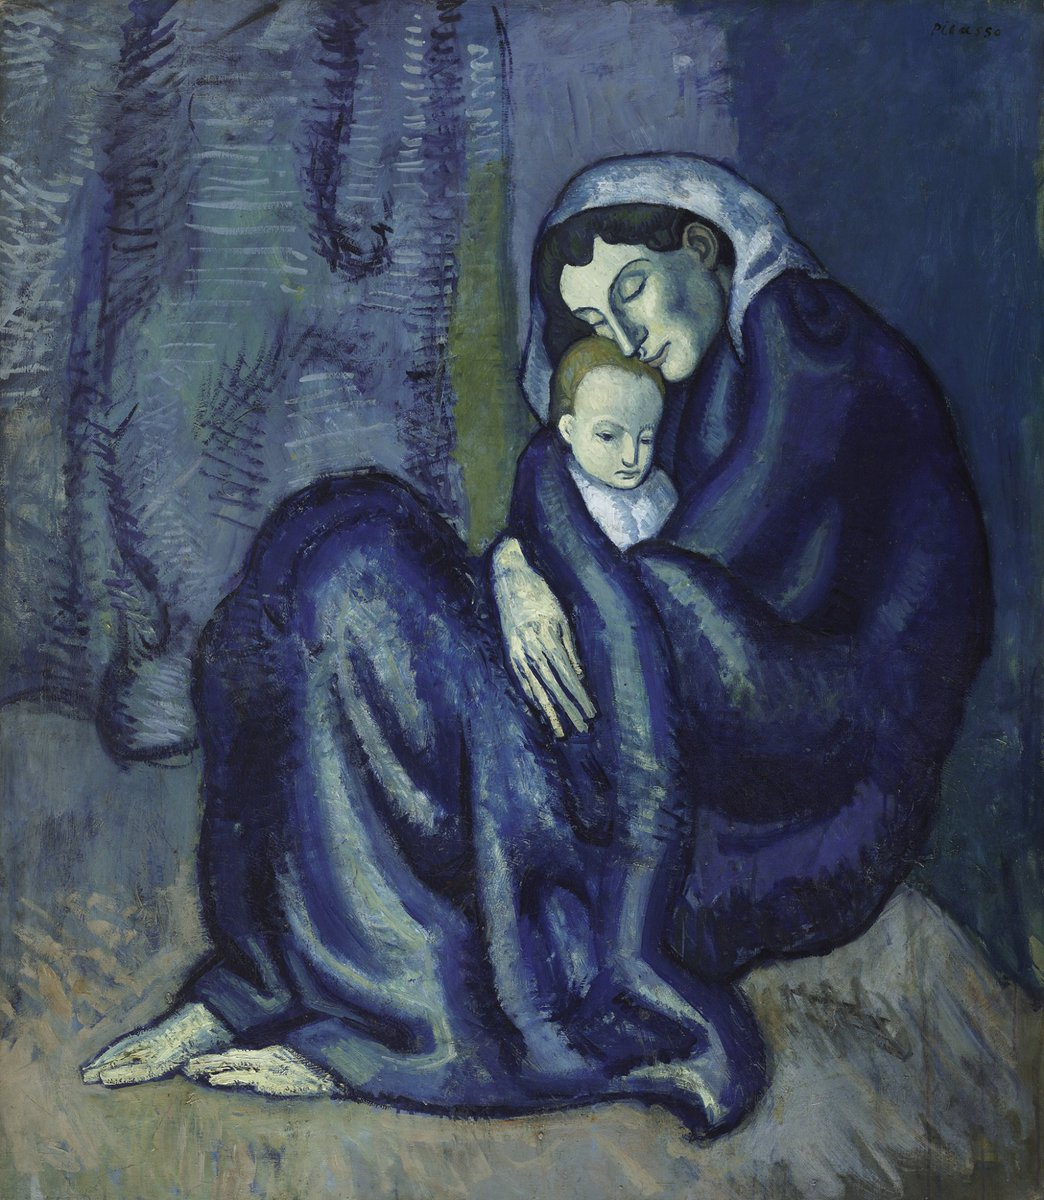 """Happy #MothersDay! Pablo #Picasso, """"Mother and Child (c.1901)."""" #blueperiod https://t.co/FhP2VbgEeF https://t.co/4xadvqu64x"""